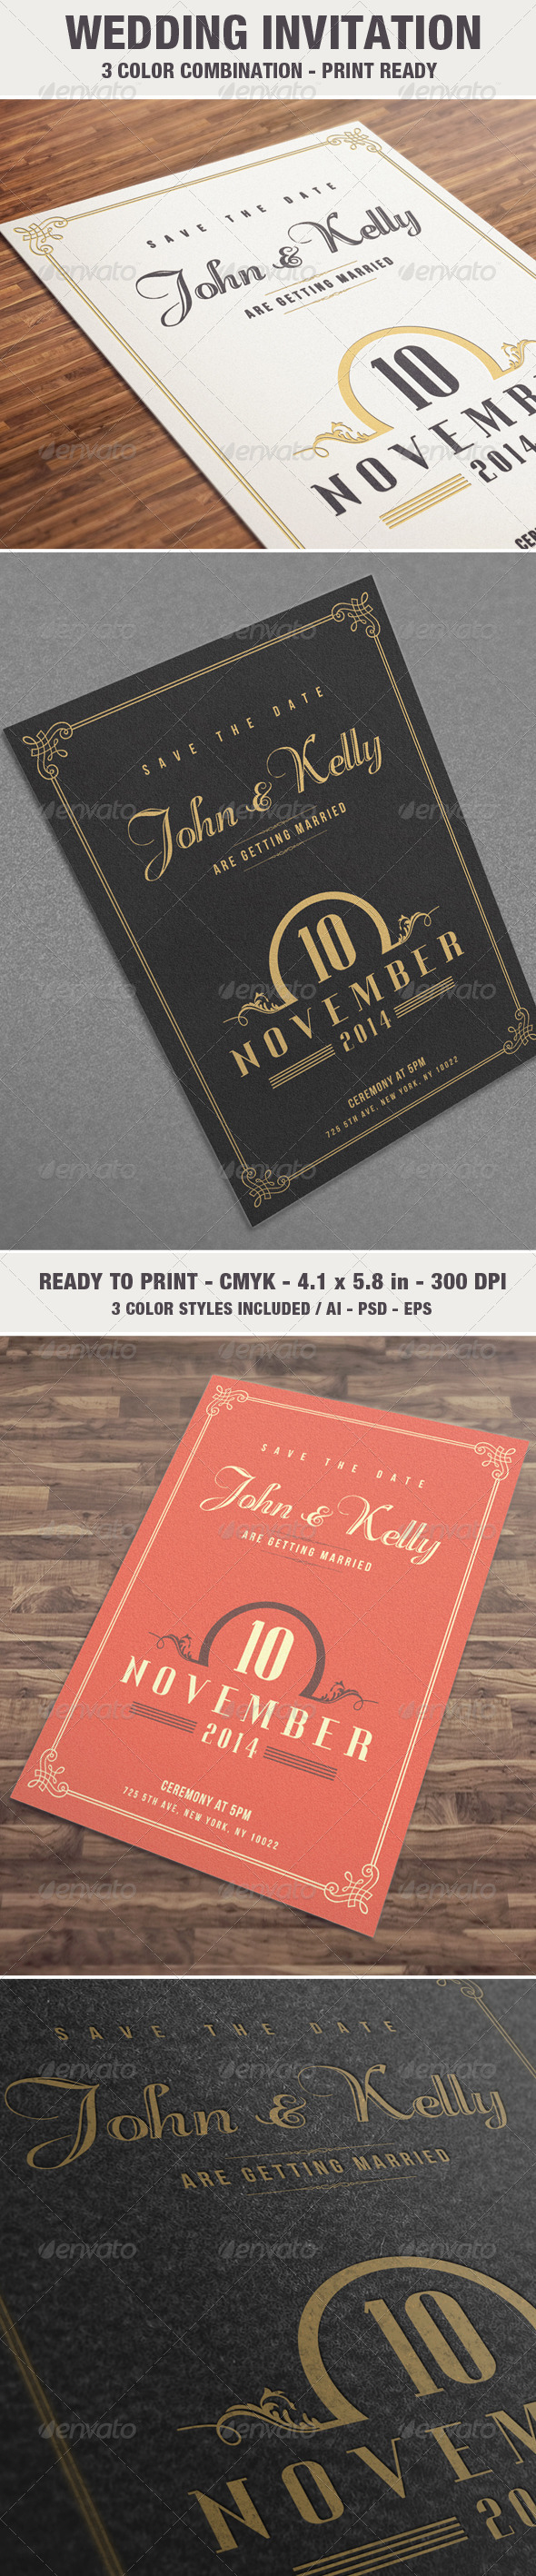 Elegant & Vintage Wedding Invitation Card V2